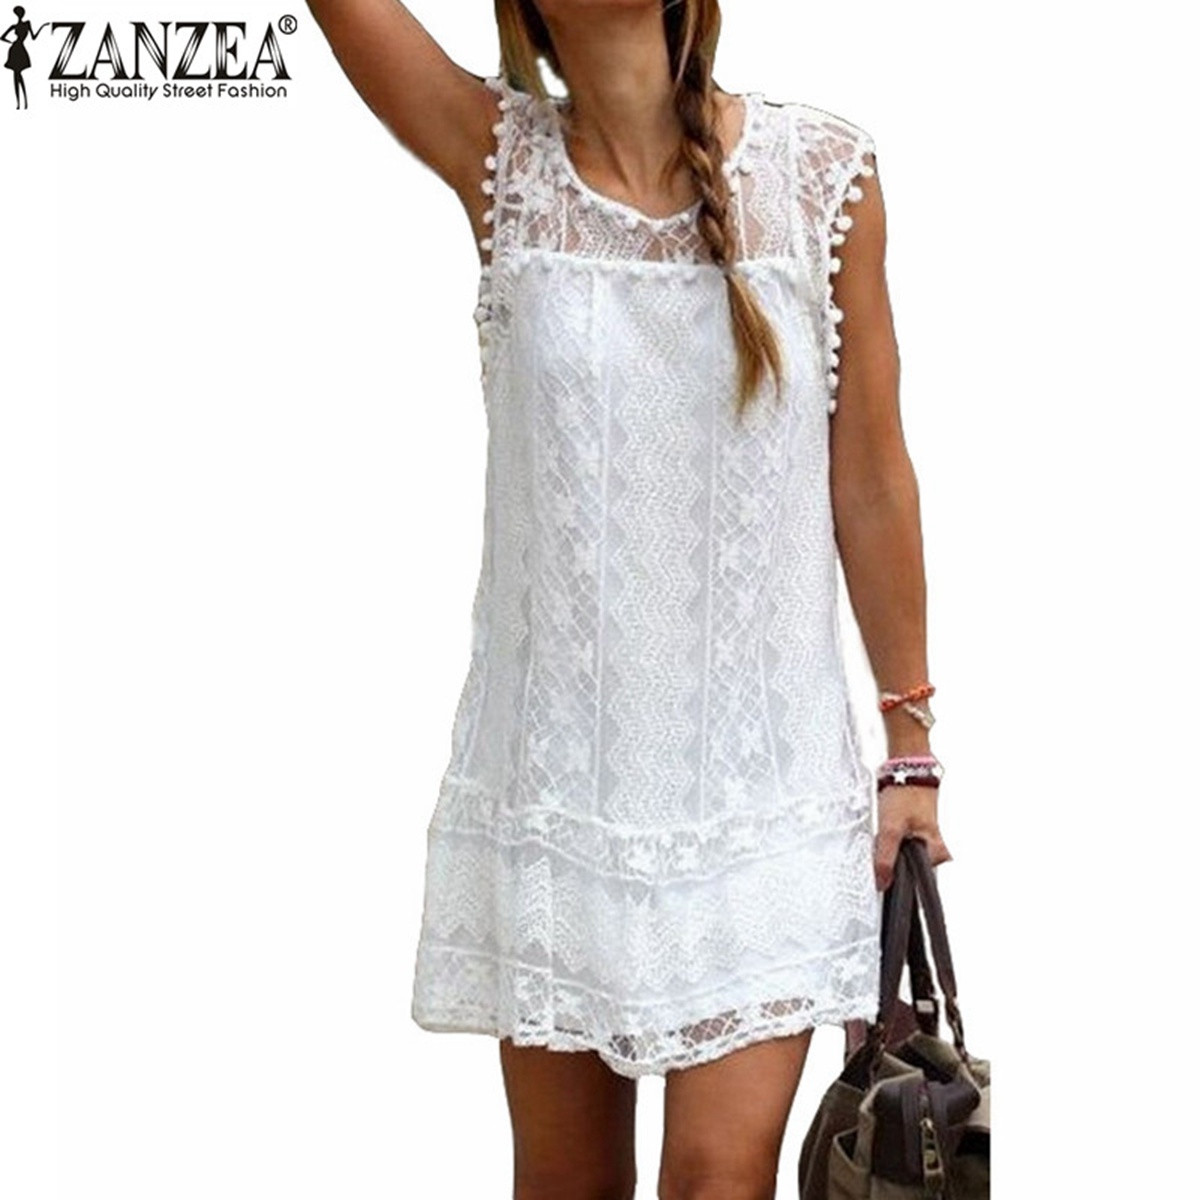 ZANZEA Vestidos 2018 Summer Elegant Women Casual Solid Short Sleeve Slim Lace Mini Dress Tops Ladies Sexy White Dress Plus Size